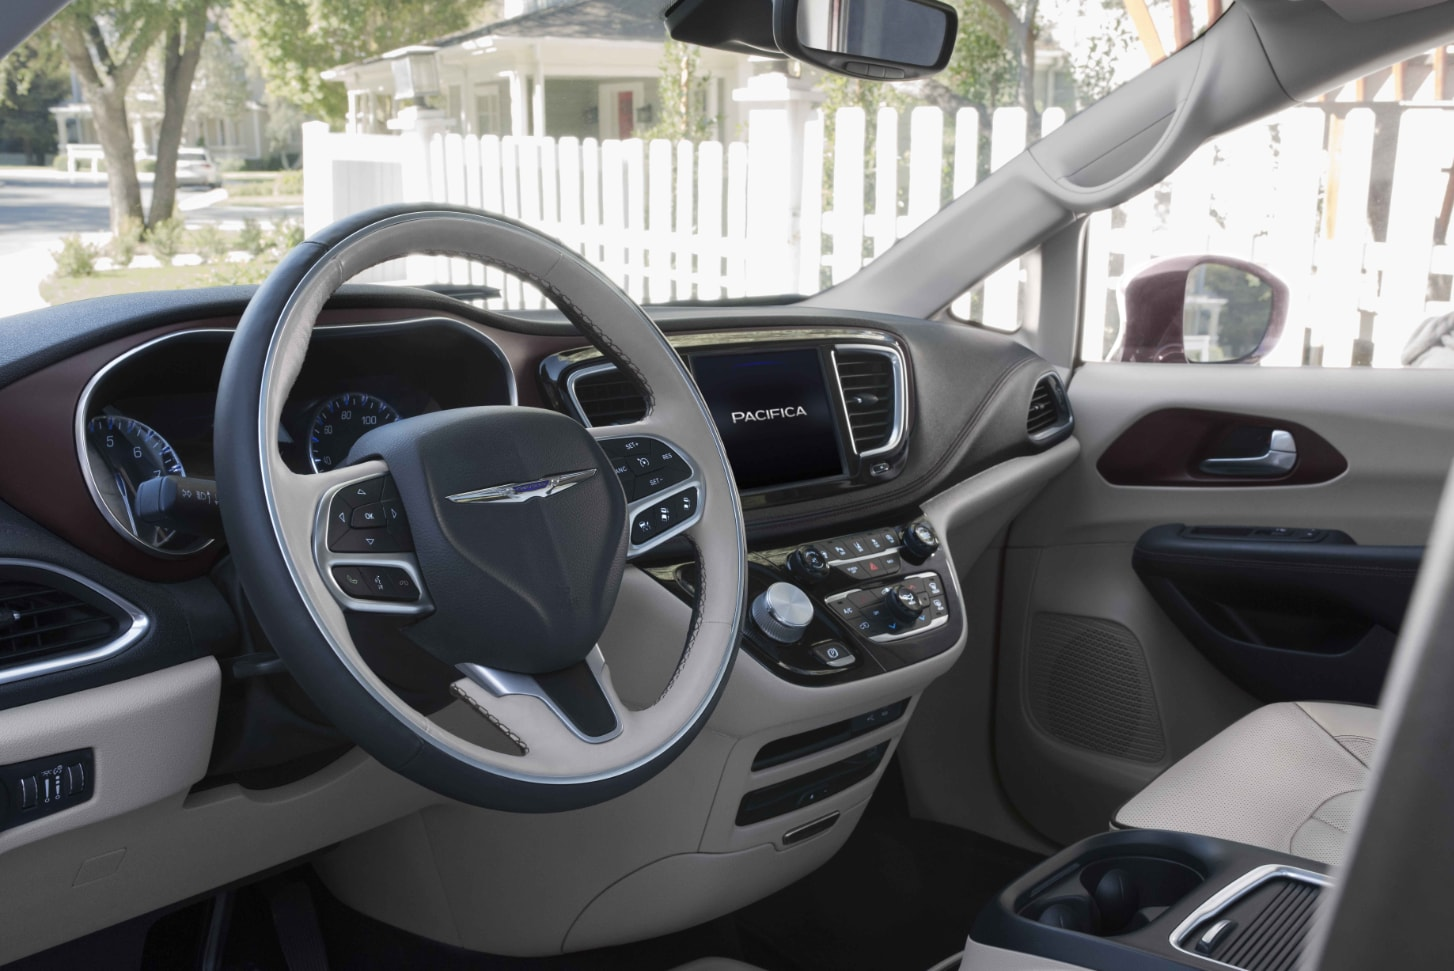 Extraordinary 2017 Pacifica Interior Colors Pictures